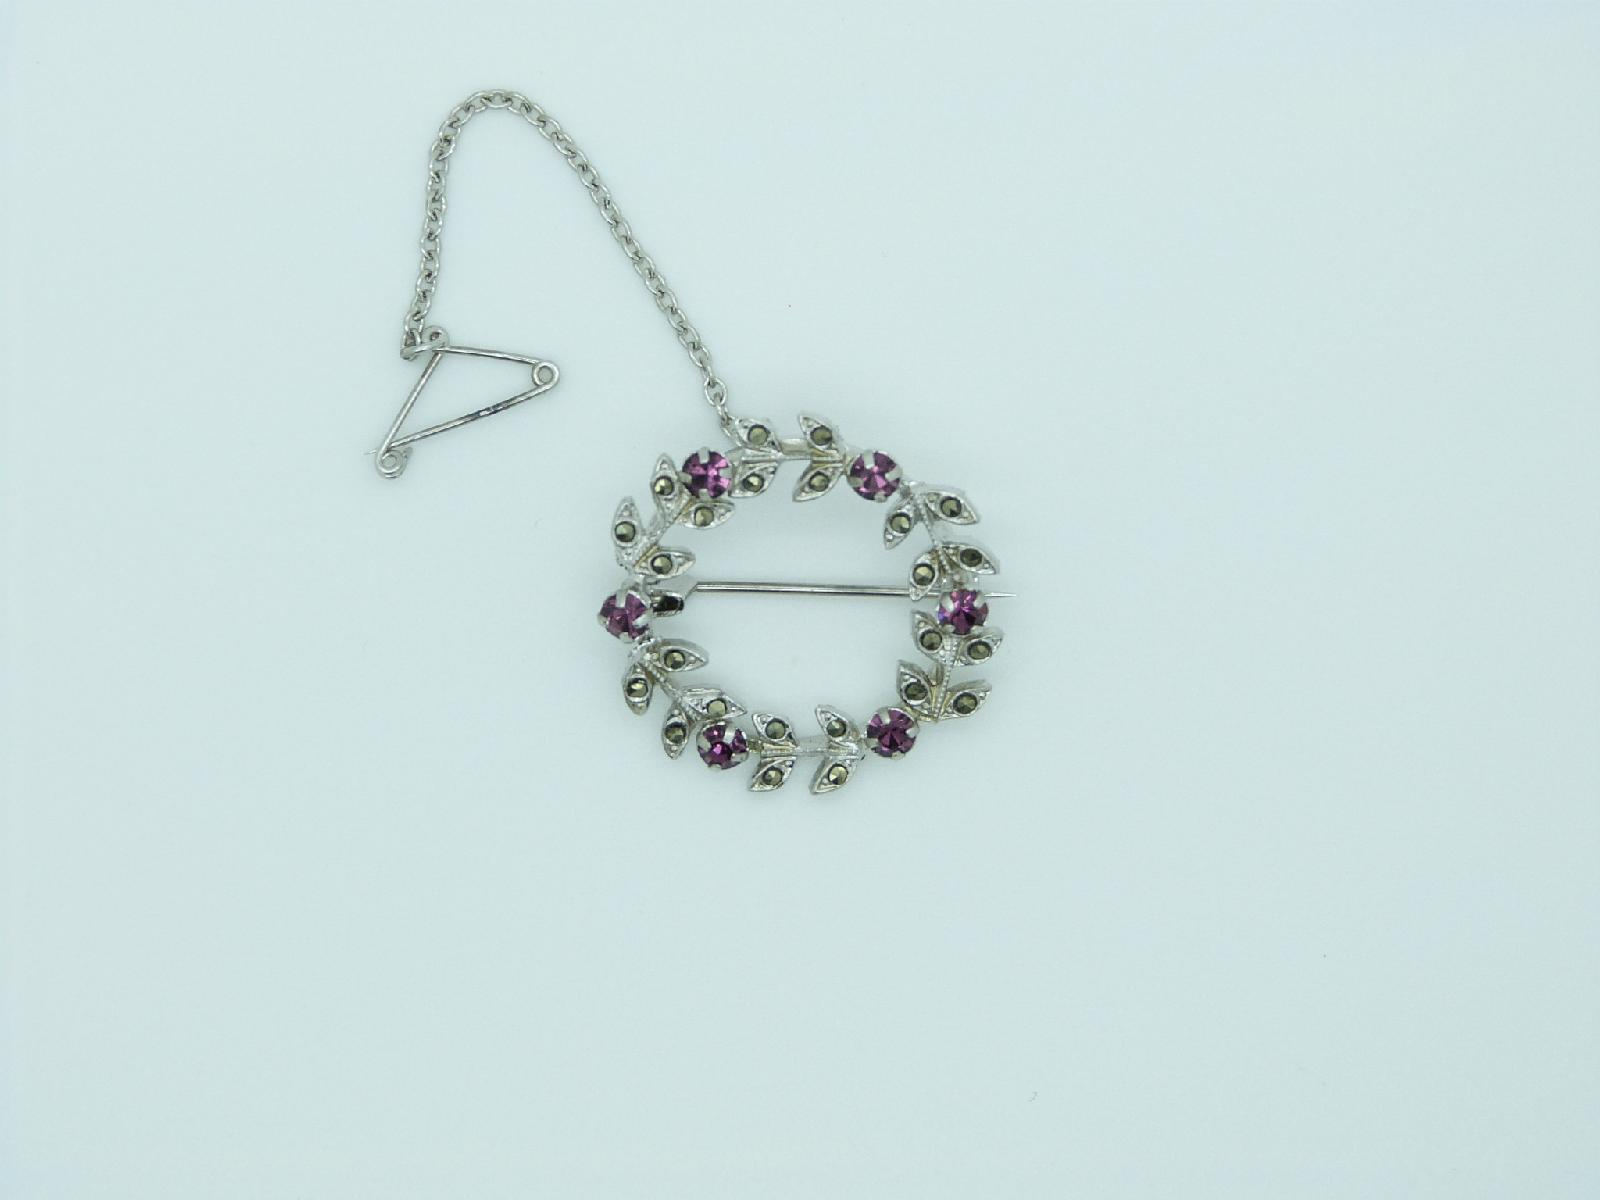 Vintage 50s Marcasite and Purple Diamante Silvertone Garland Brooch with Safety Chain 3cms